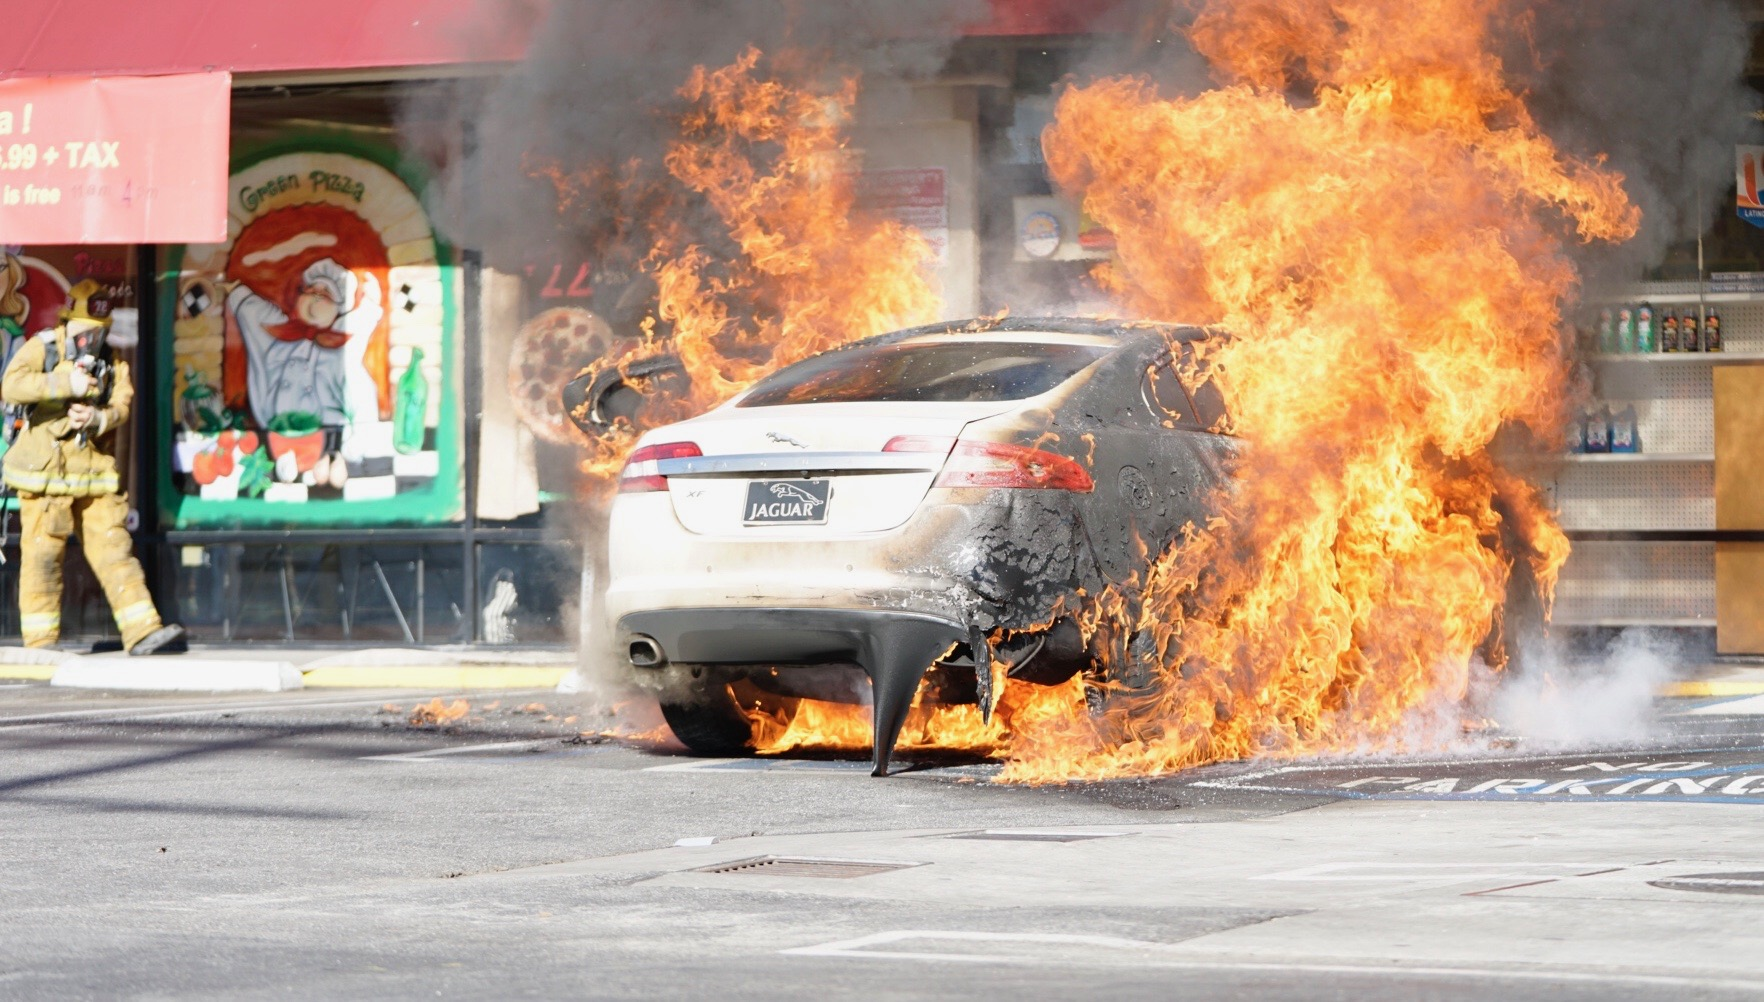 Fire BBQ's car in shopping plaza